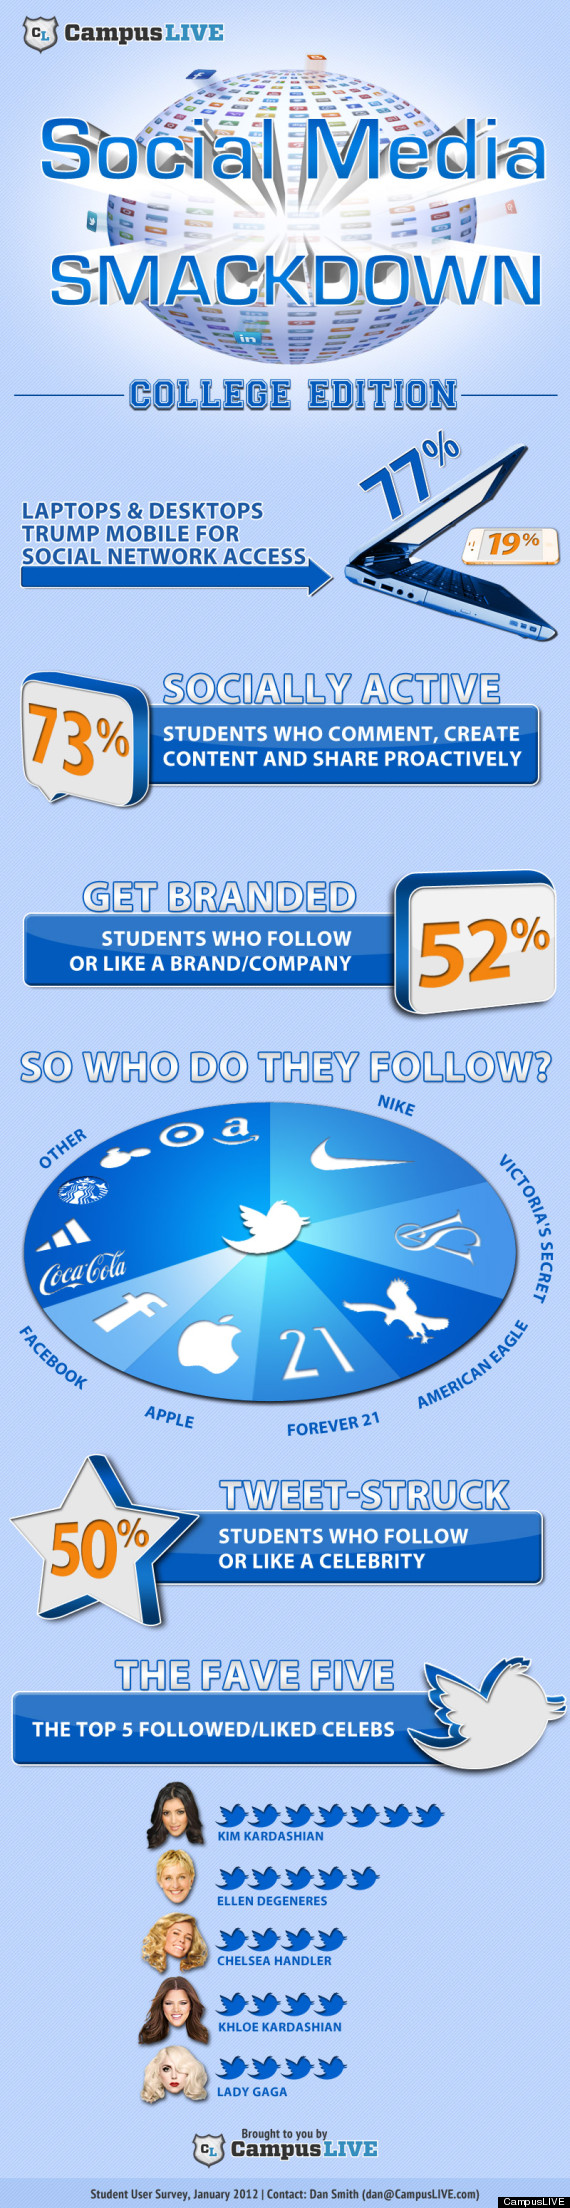 campuslive social media smackdown infographic